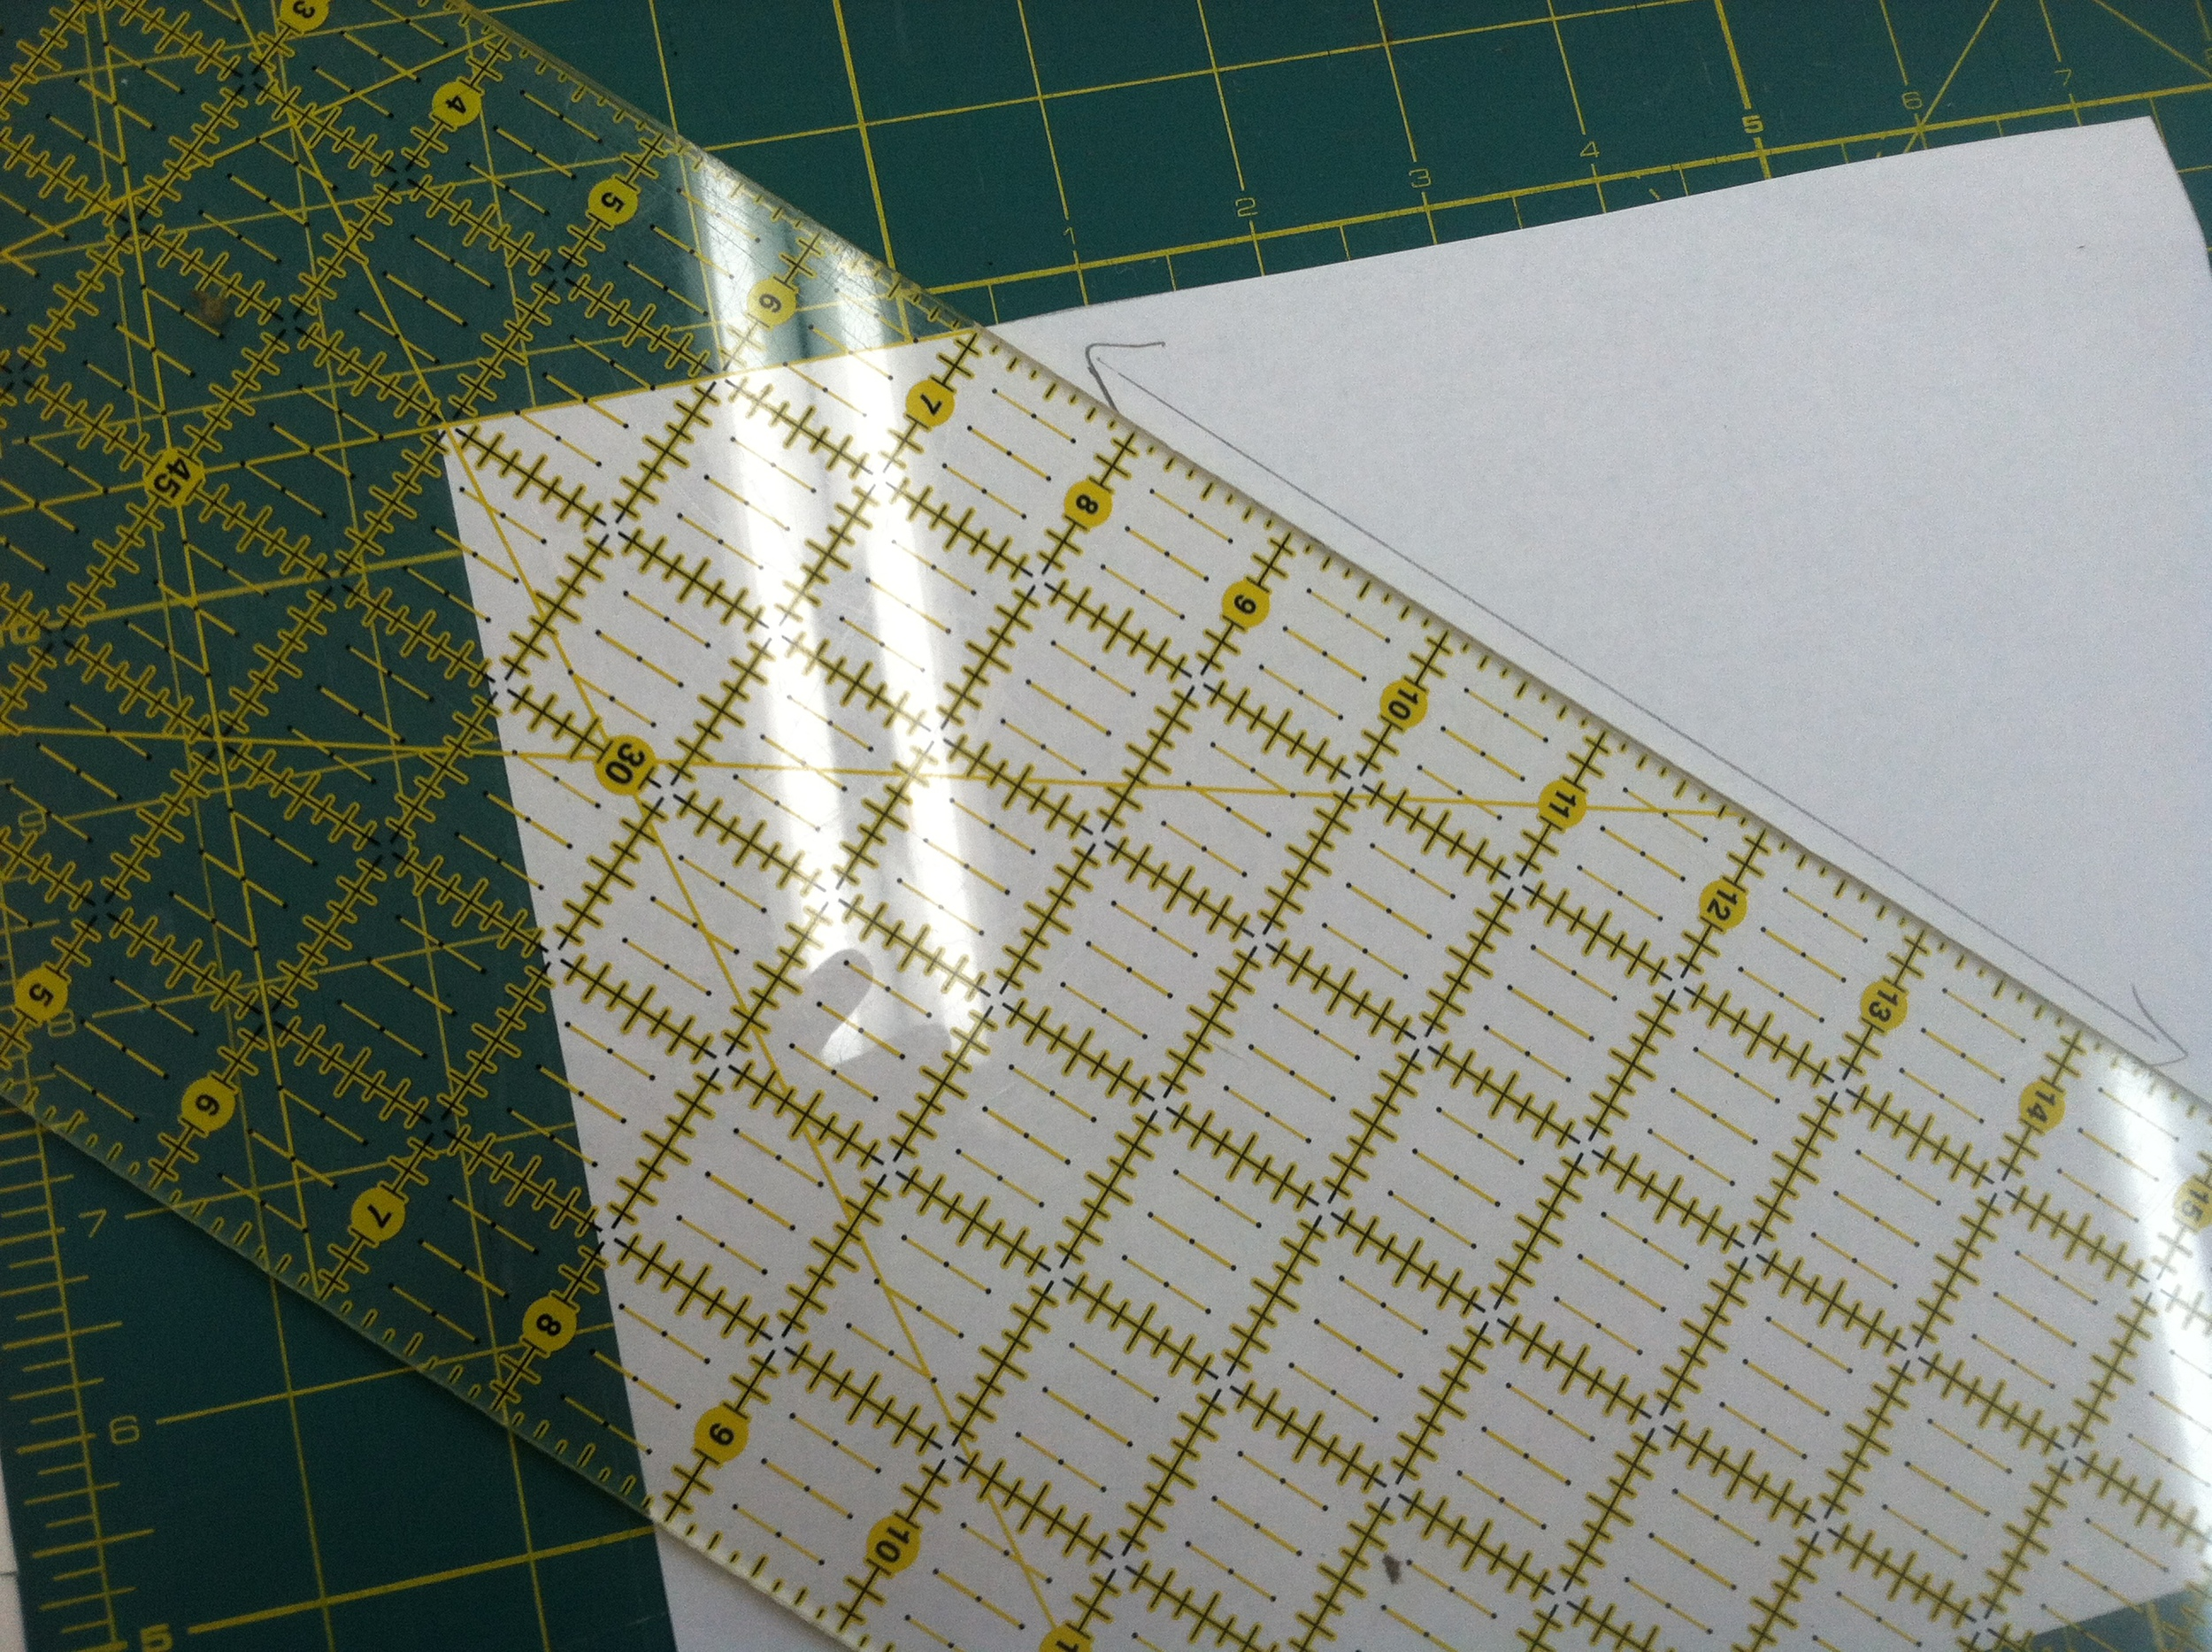 You can see I used the 45 degree line on my ruler to mark an arrow on my new pattern piece.